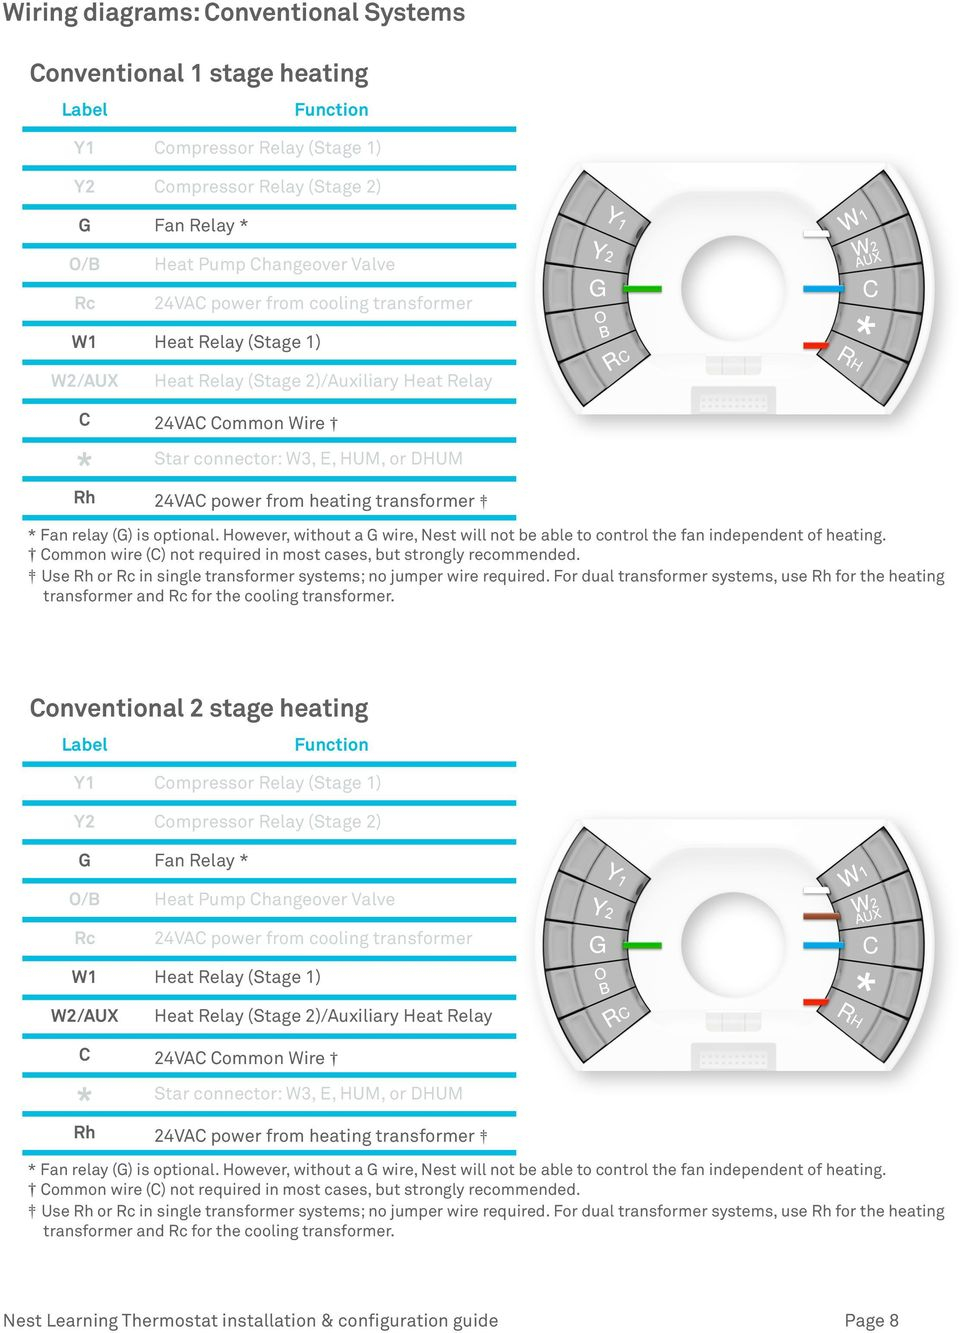 Nest Learning Thermostat Pro Installation & Configuration Guide - Pdf - Nest Thermostat Wiring Diagram Heat Pump With Auxiliary Heat